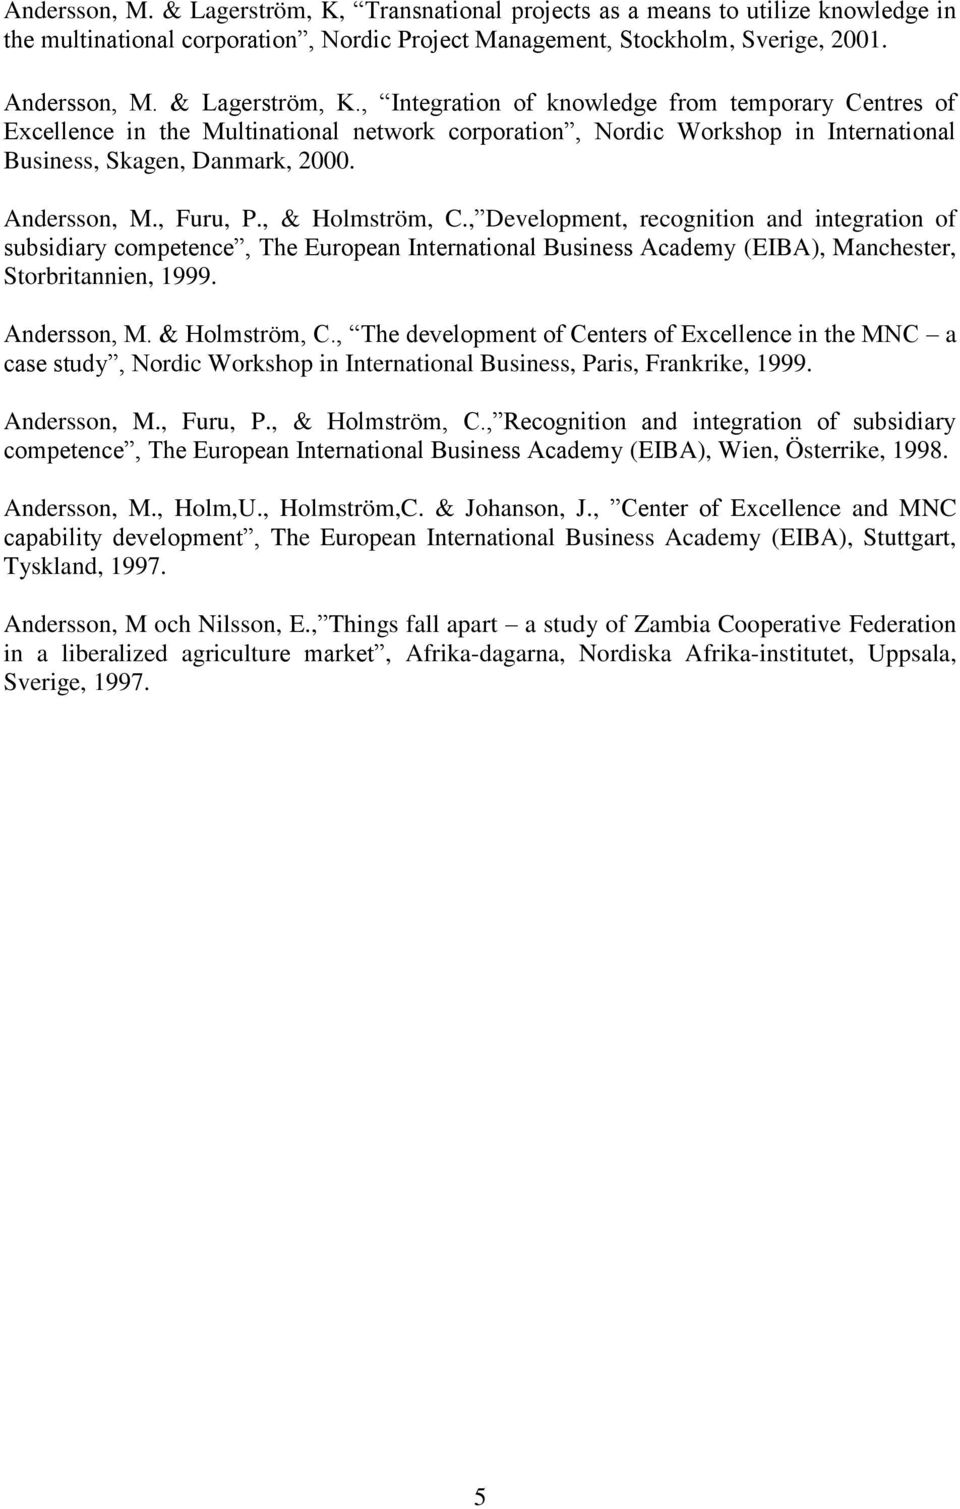 Andersson, M., Furu, P., & Holmström, C., Development, recognition and integration of subsidiary competence, The European International Business Academy (EIBA), Manchester, Storbritannien, 1999.